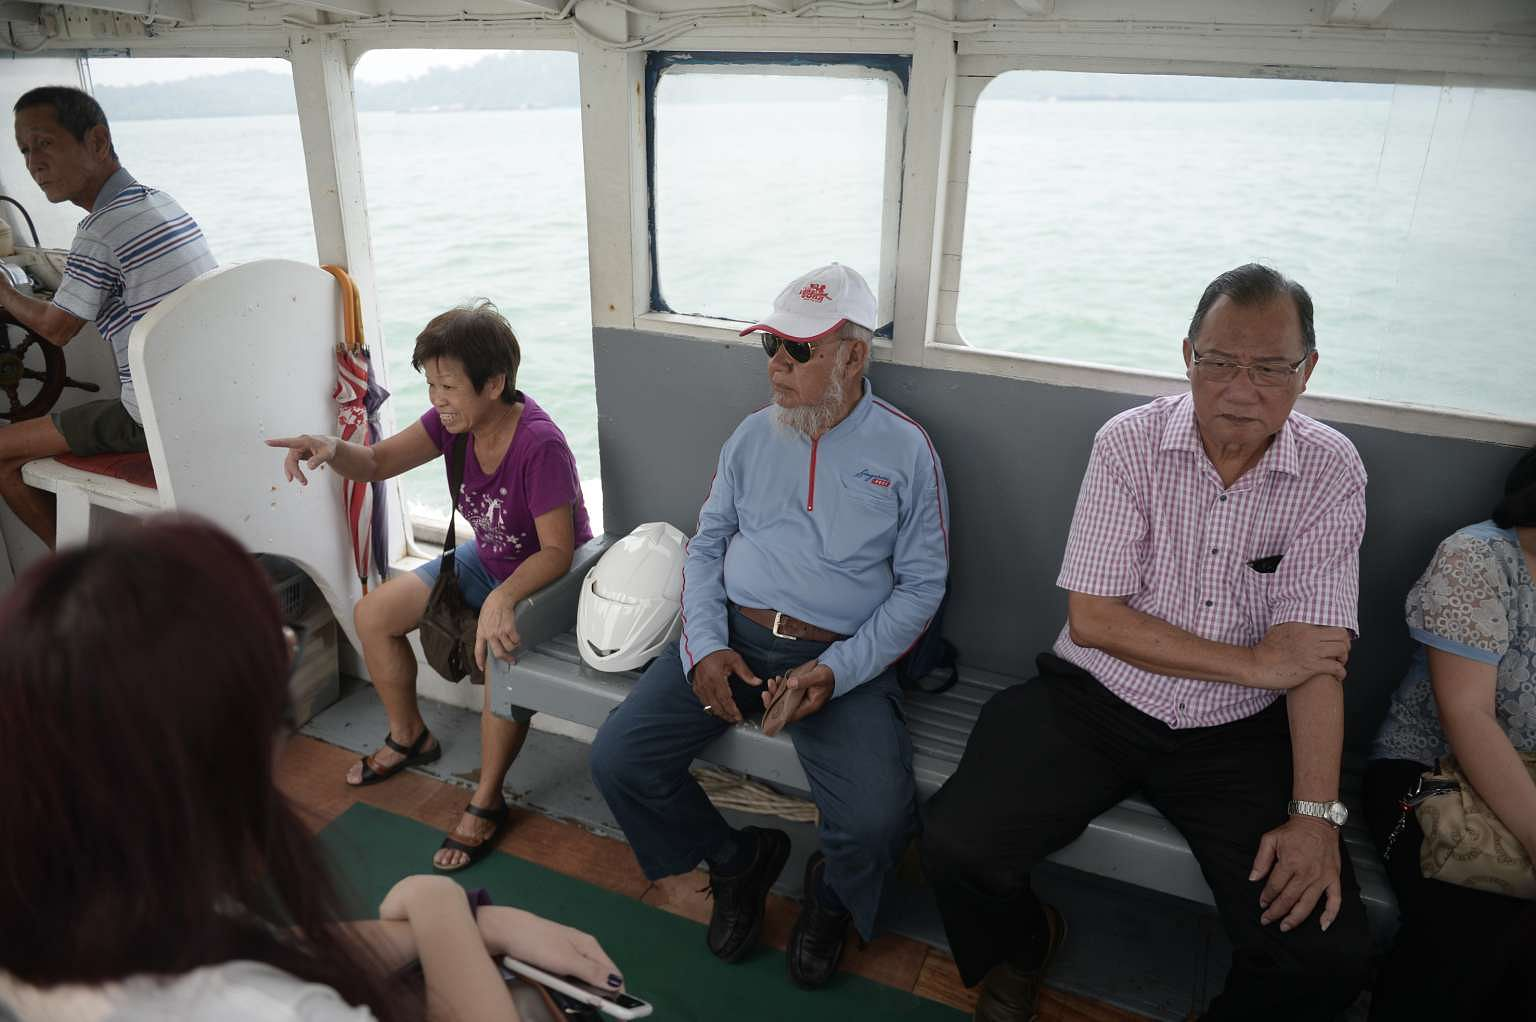 Mr Haron Jomahat (centre) takes a boat five days a week to Pulau Ubin, where he delivers mail to about 50 buildings.